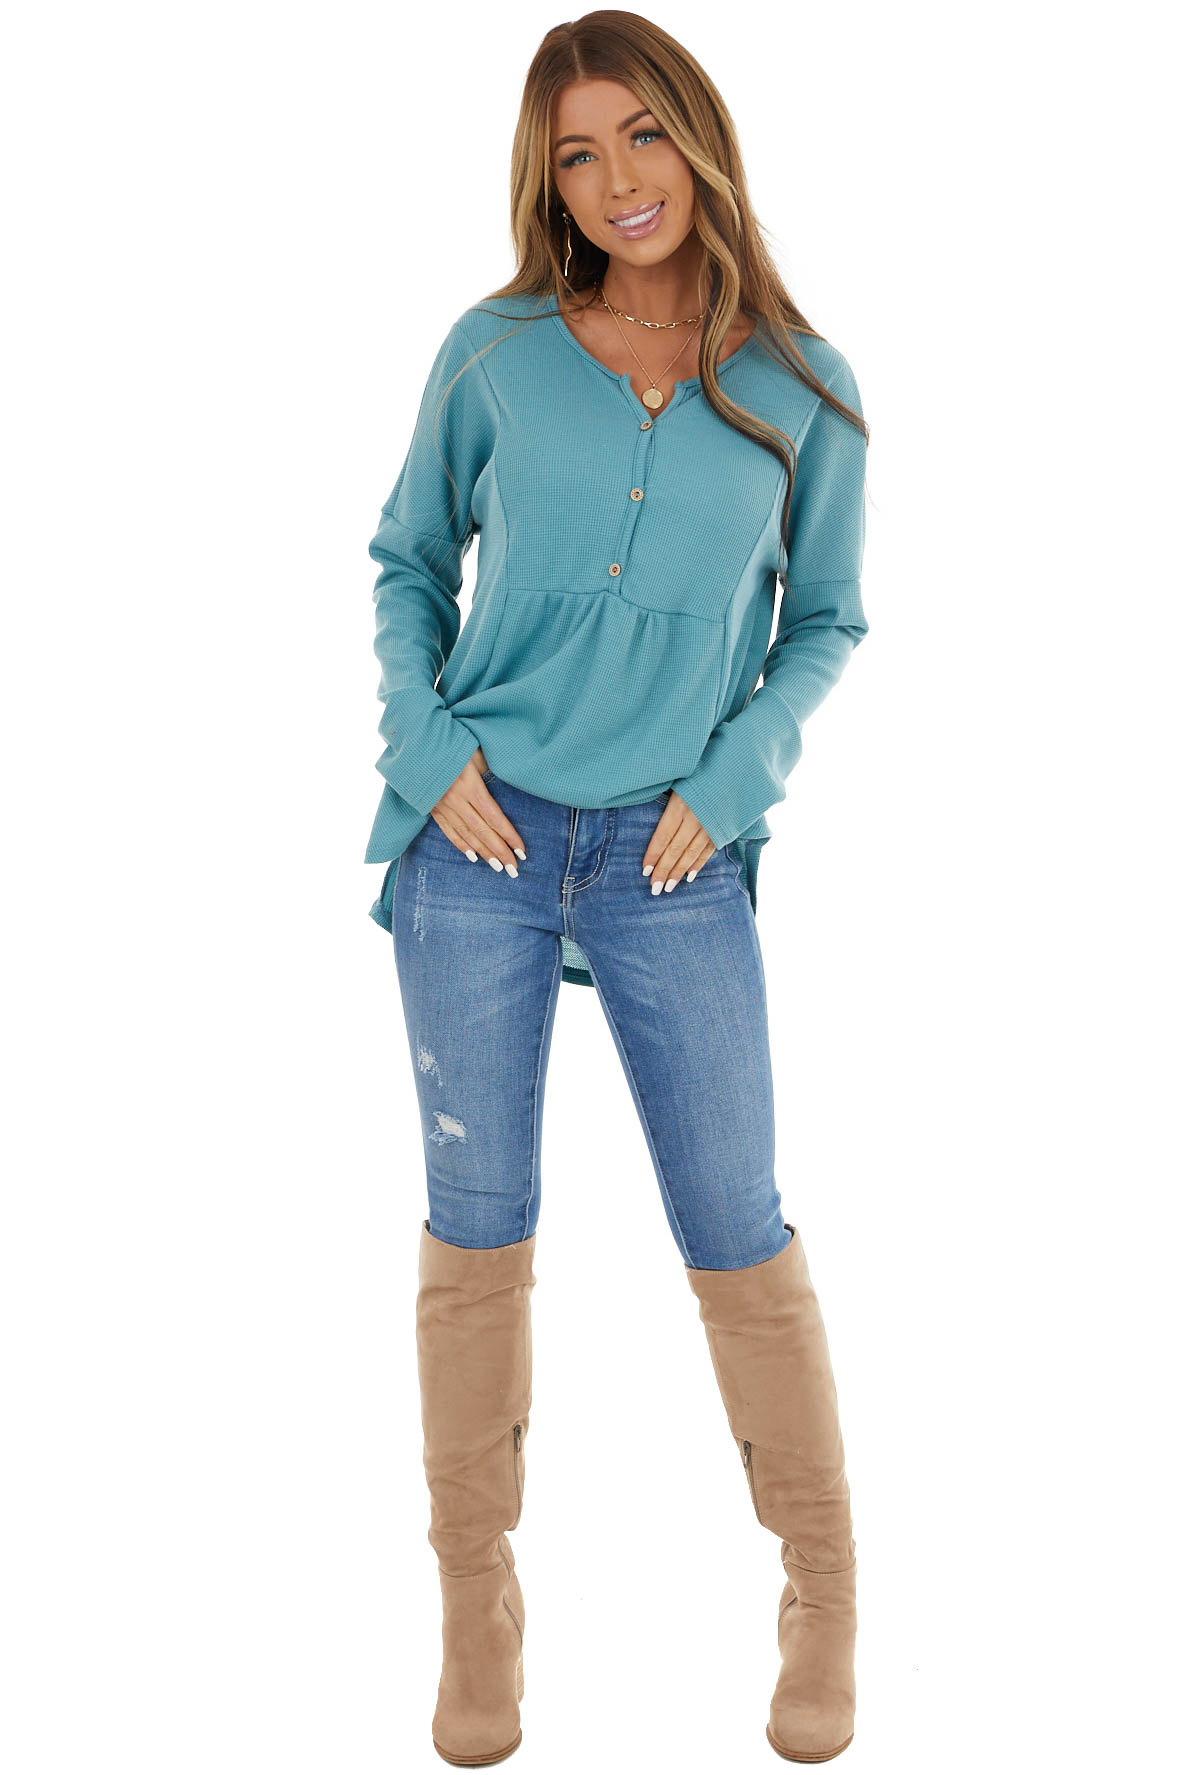 Teal Thermal Knit Top with Buttons and Ruffle Detail